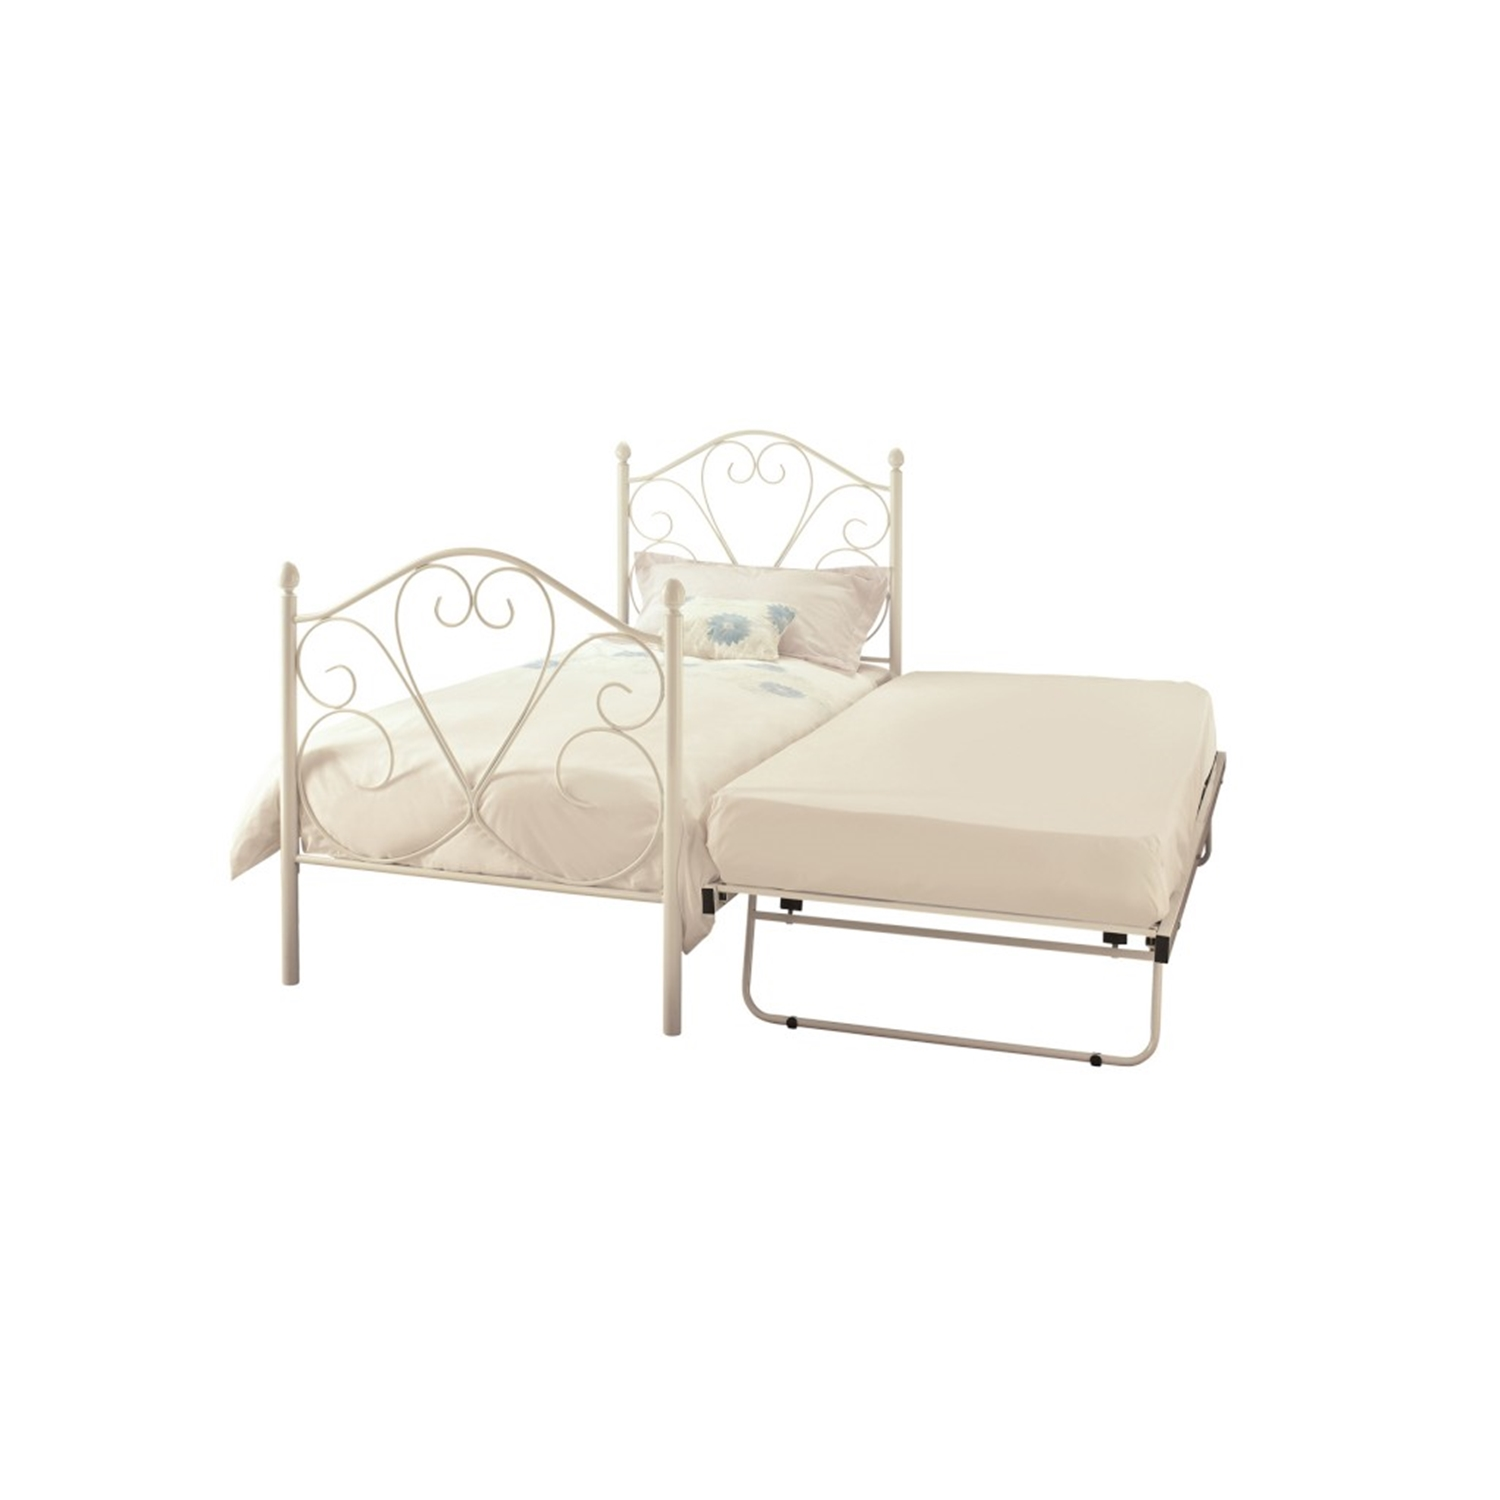 Image of Casa Isabelle Single Guest Bed